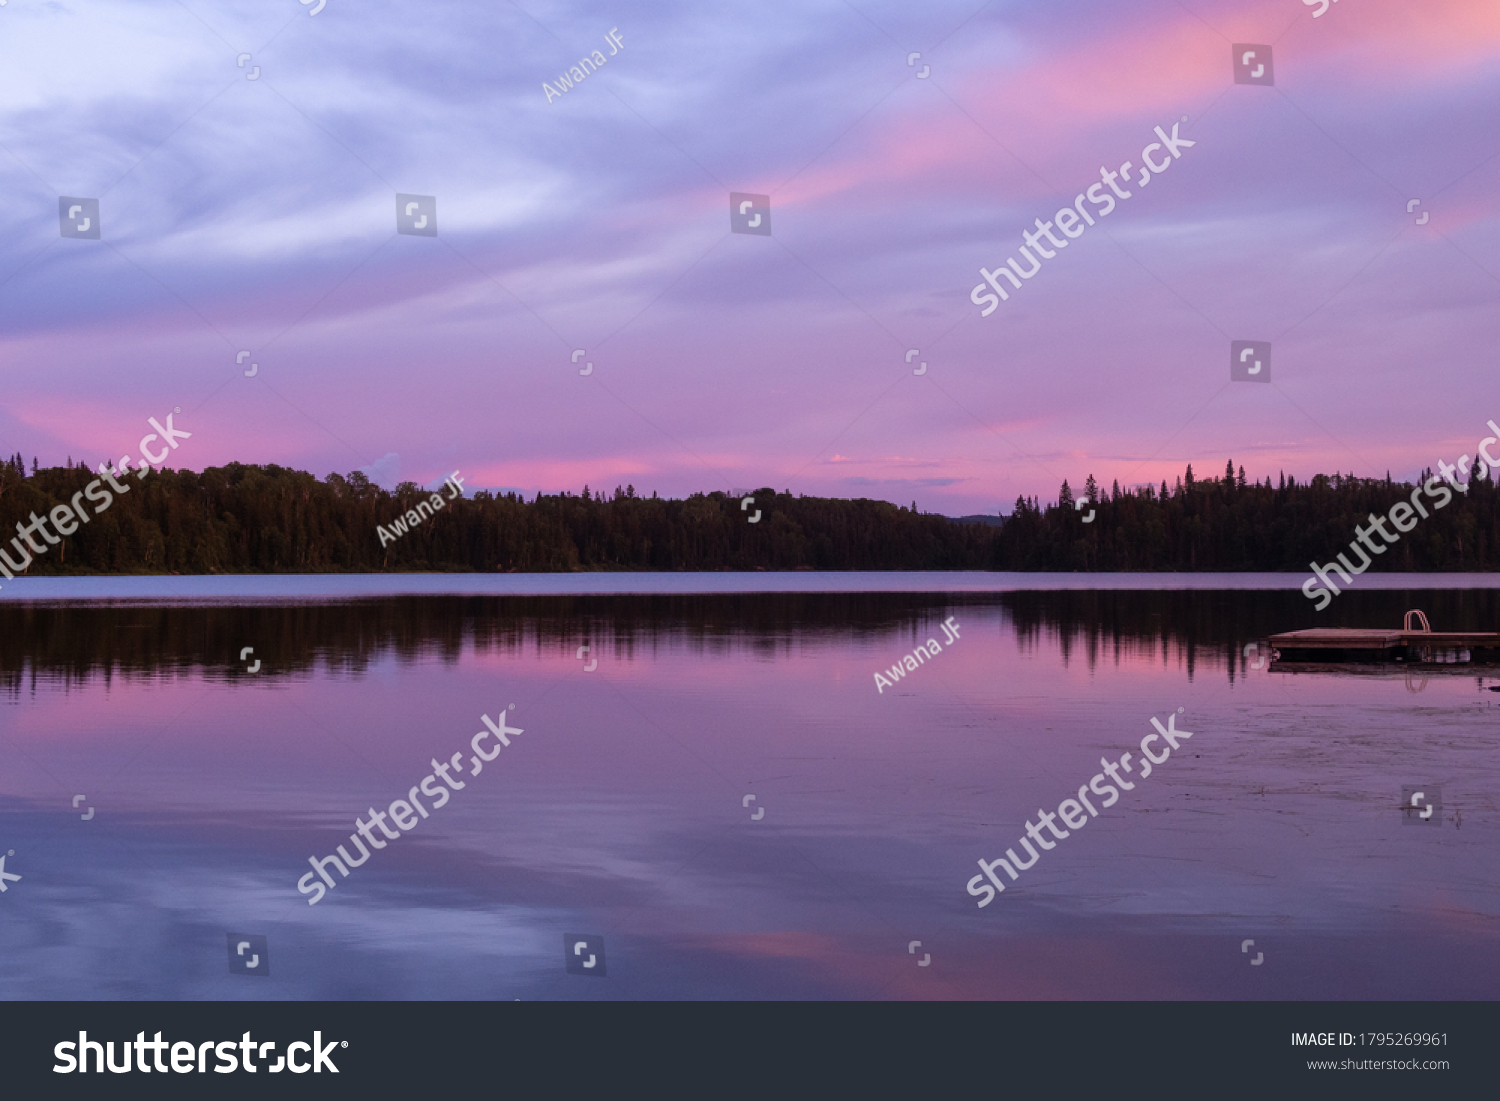 stock-photo-beautiful-sunset-view-on-a-l